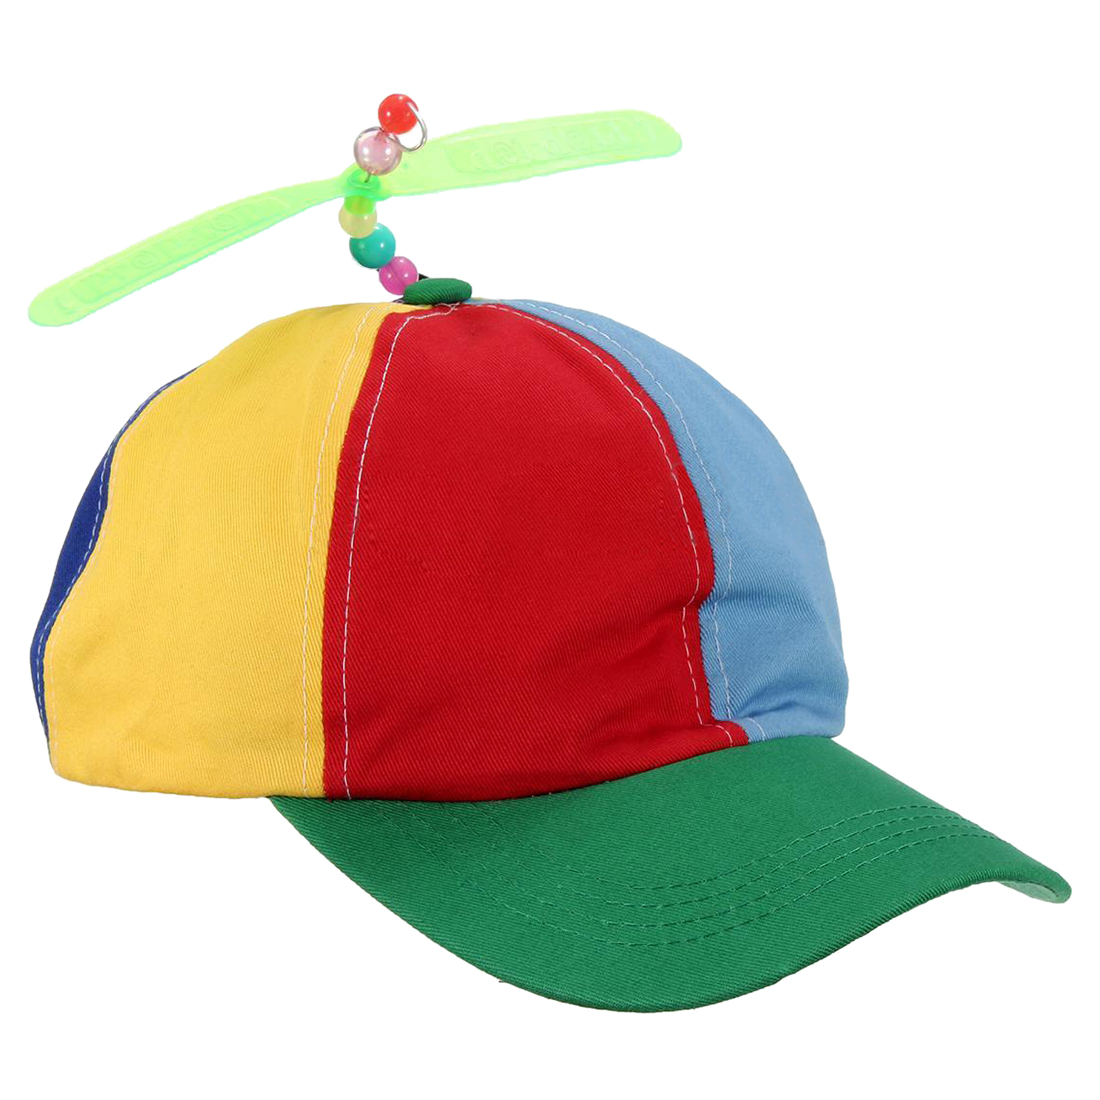 864d1d7aaa6a5 Adjustable Propeller Ball Cap Hat Multi Color Clown Costume Accessory-in  Baseball Caps from Men s Clothing   Accessories on Aliexpress.com